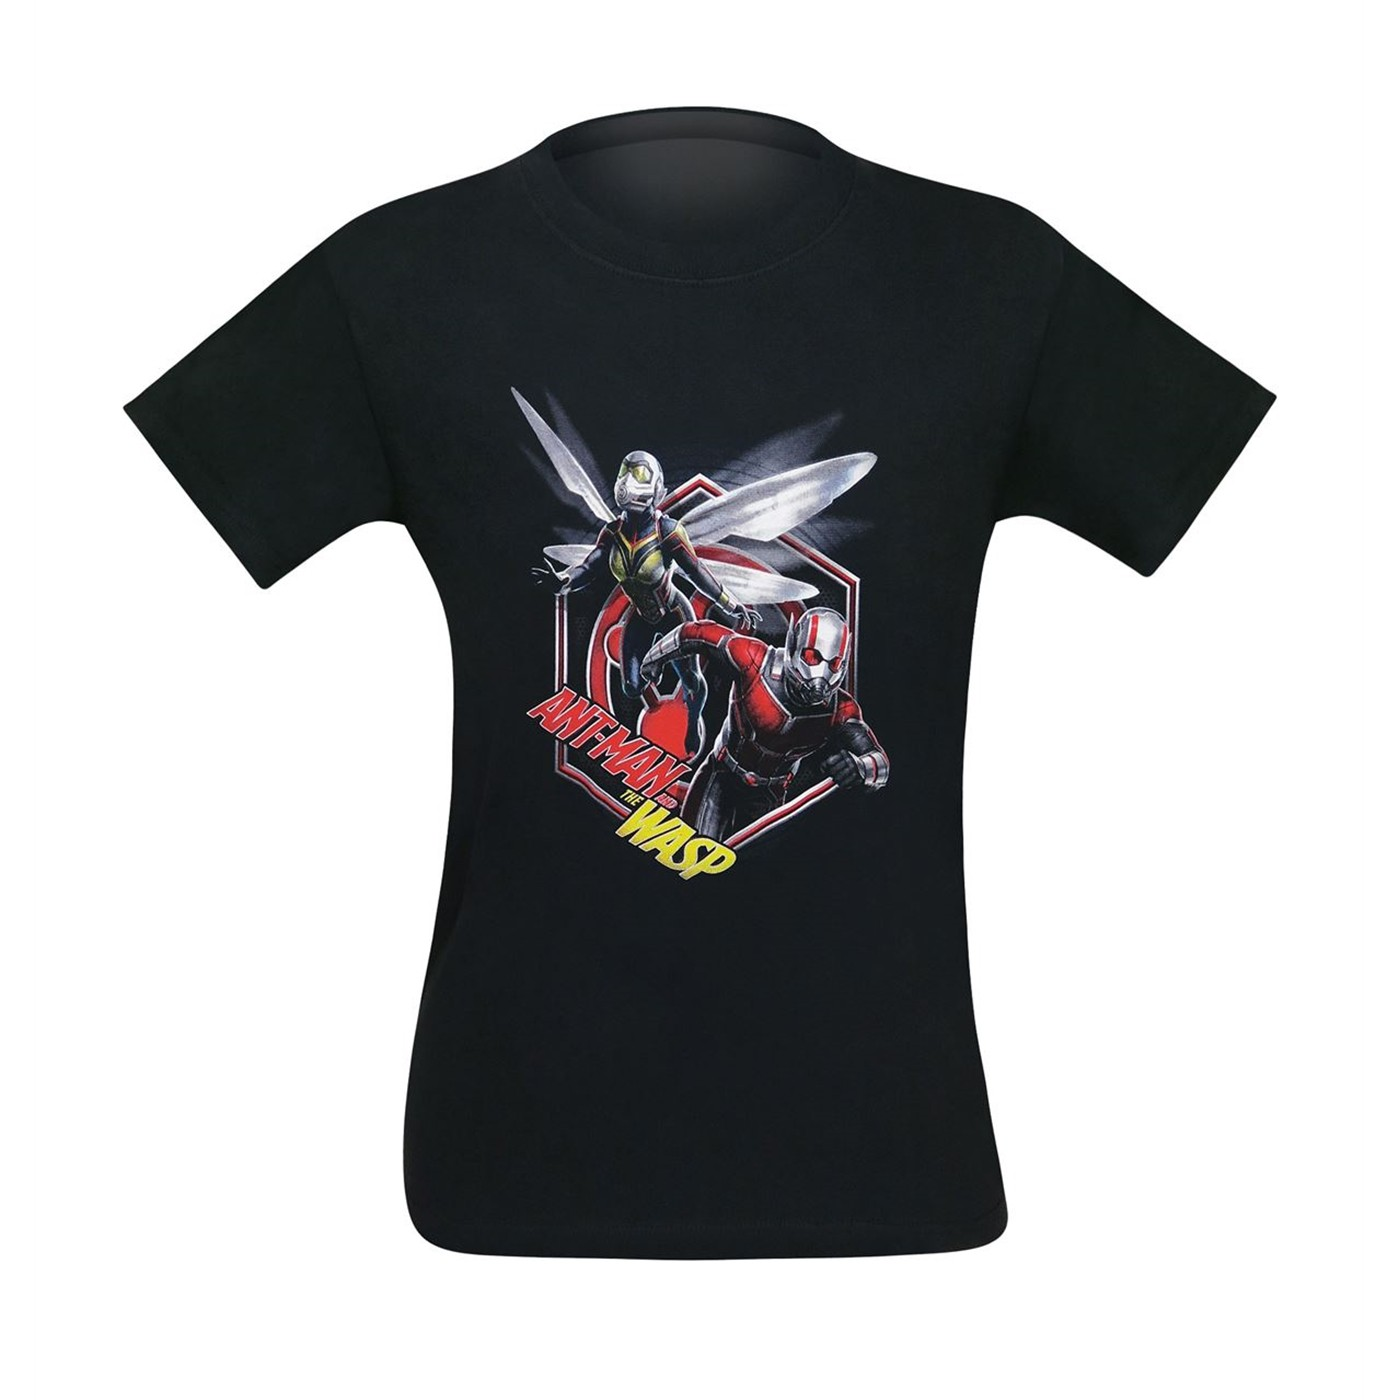 Ant-Man & The Wasp Movie Men's T-Shirt